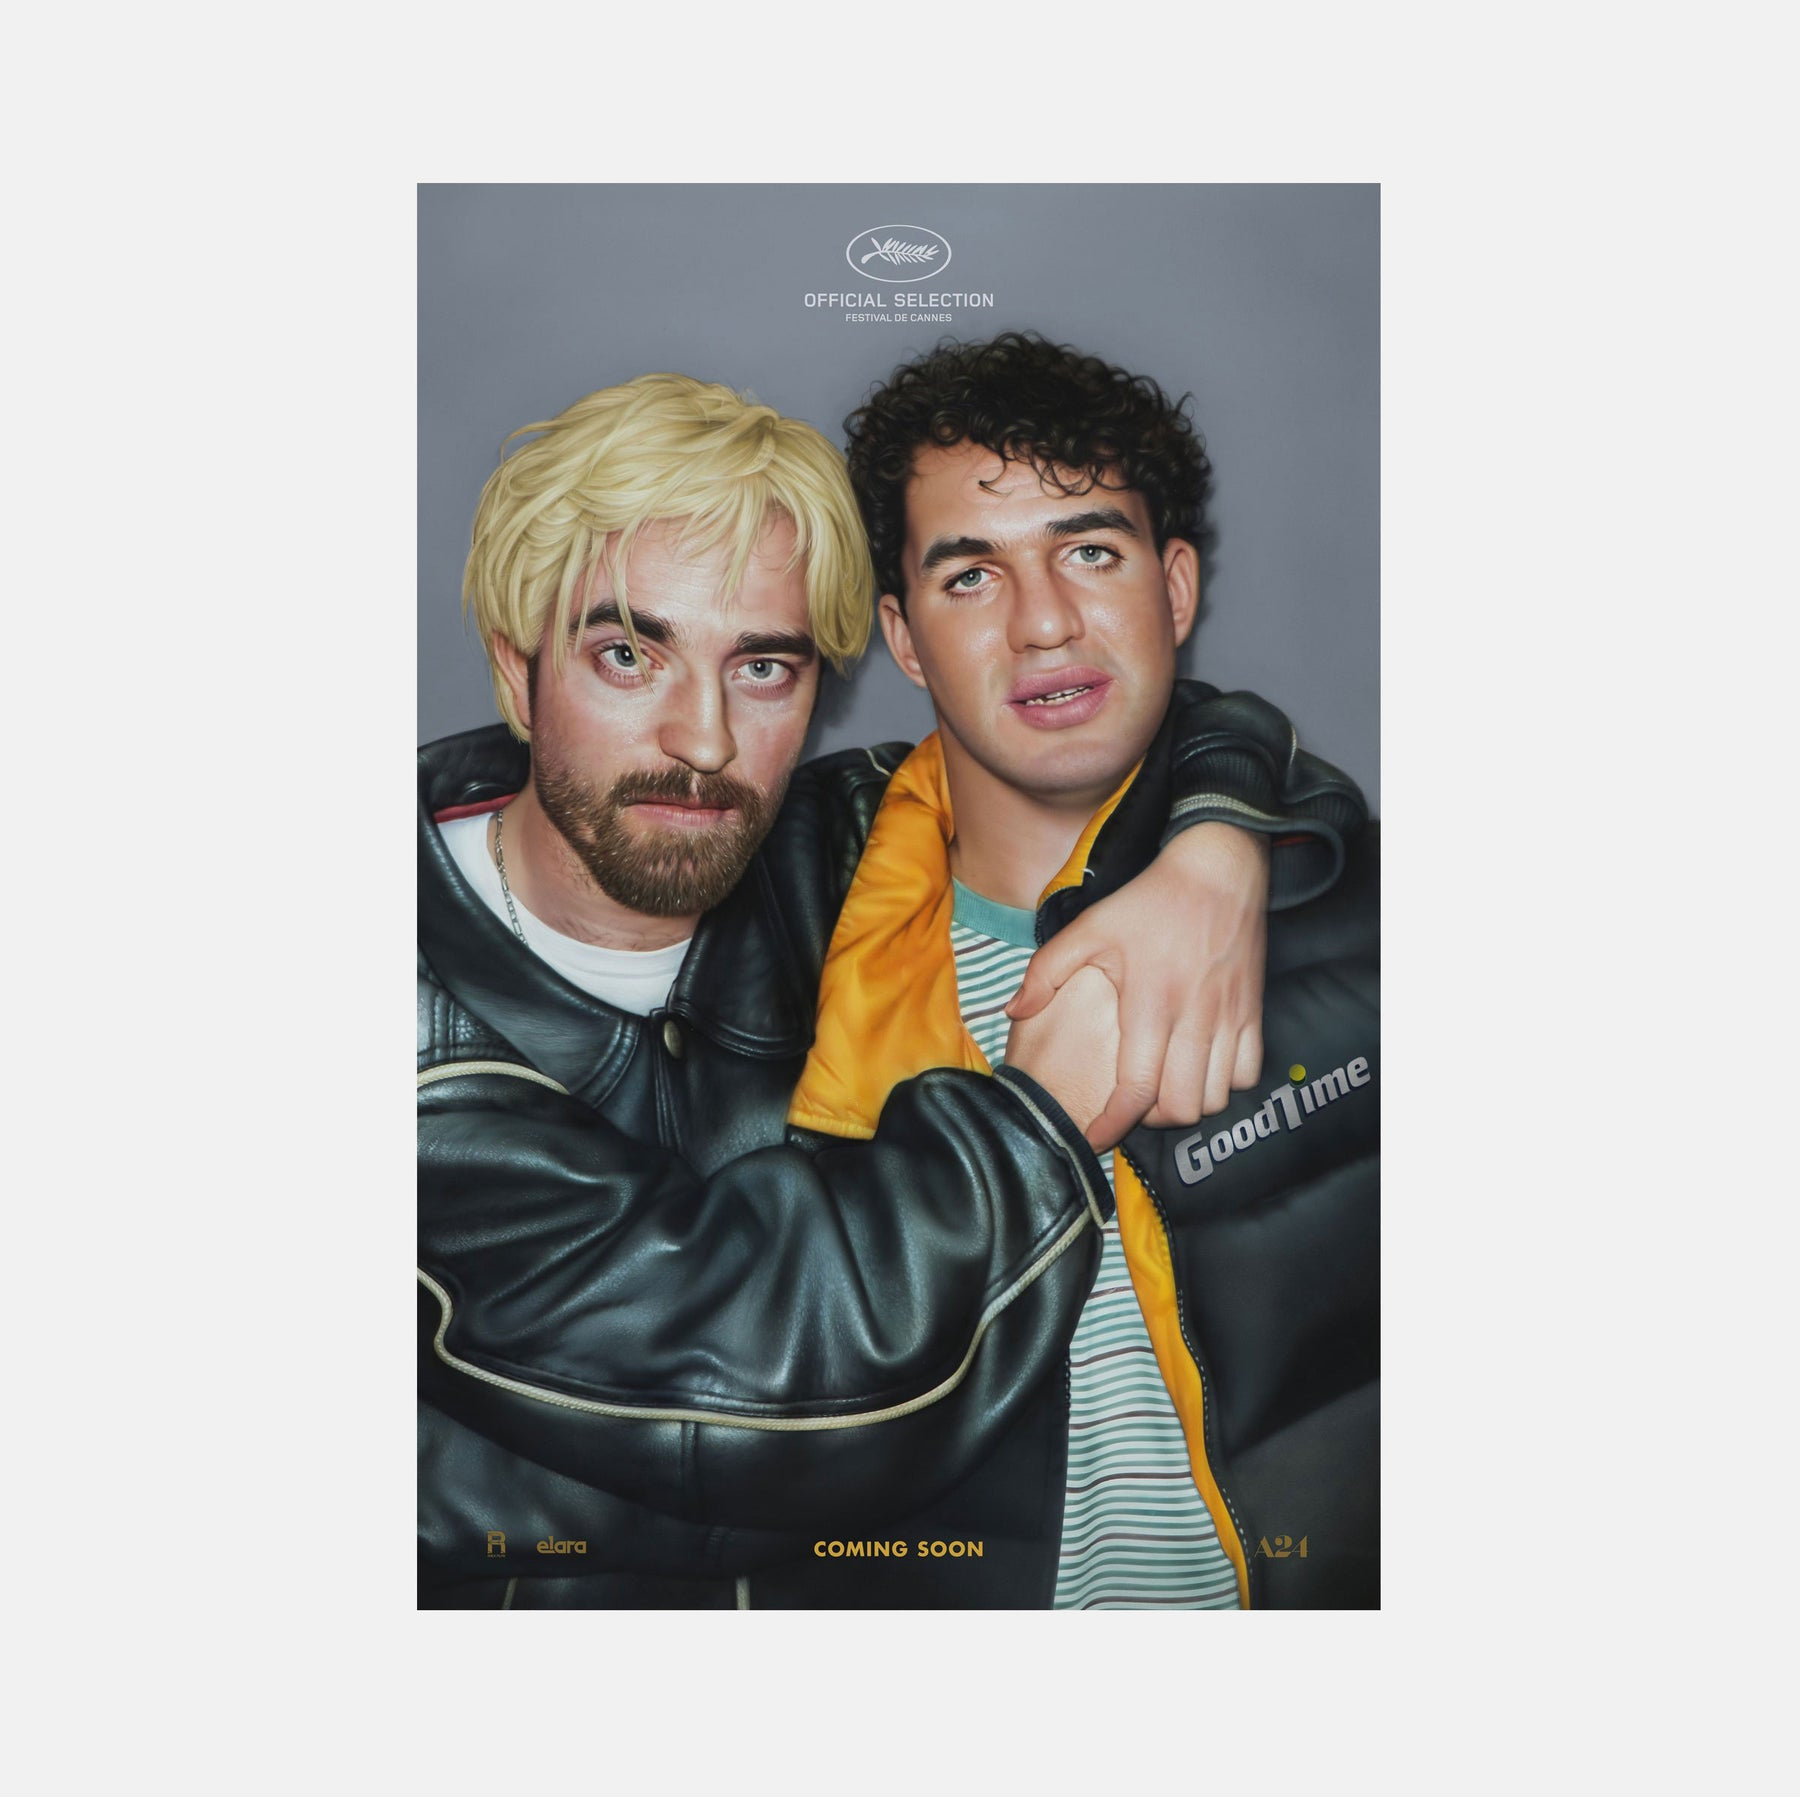 Good Time Printable Airbrush Poster